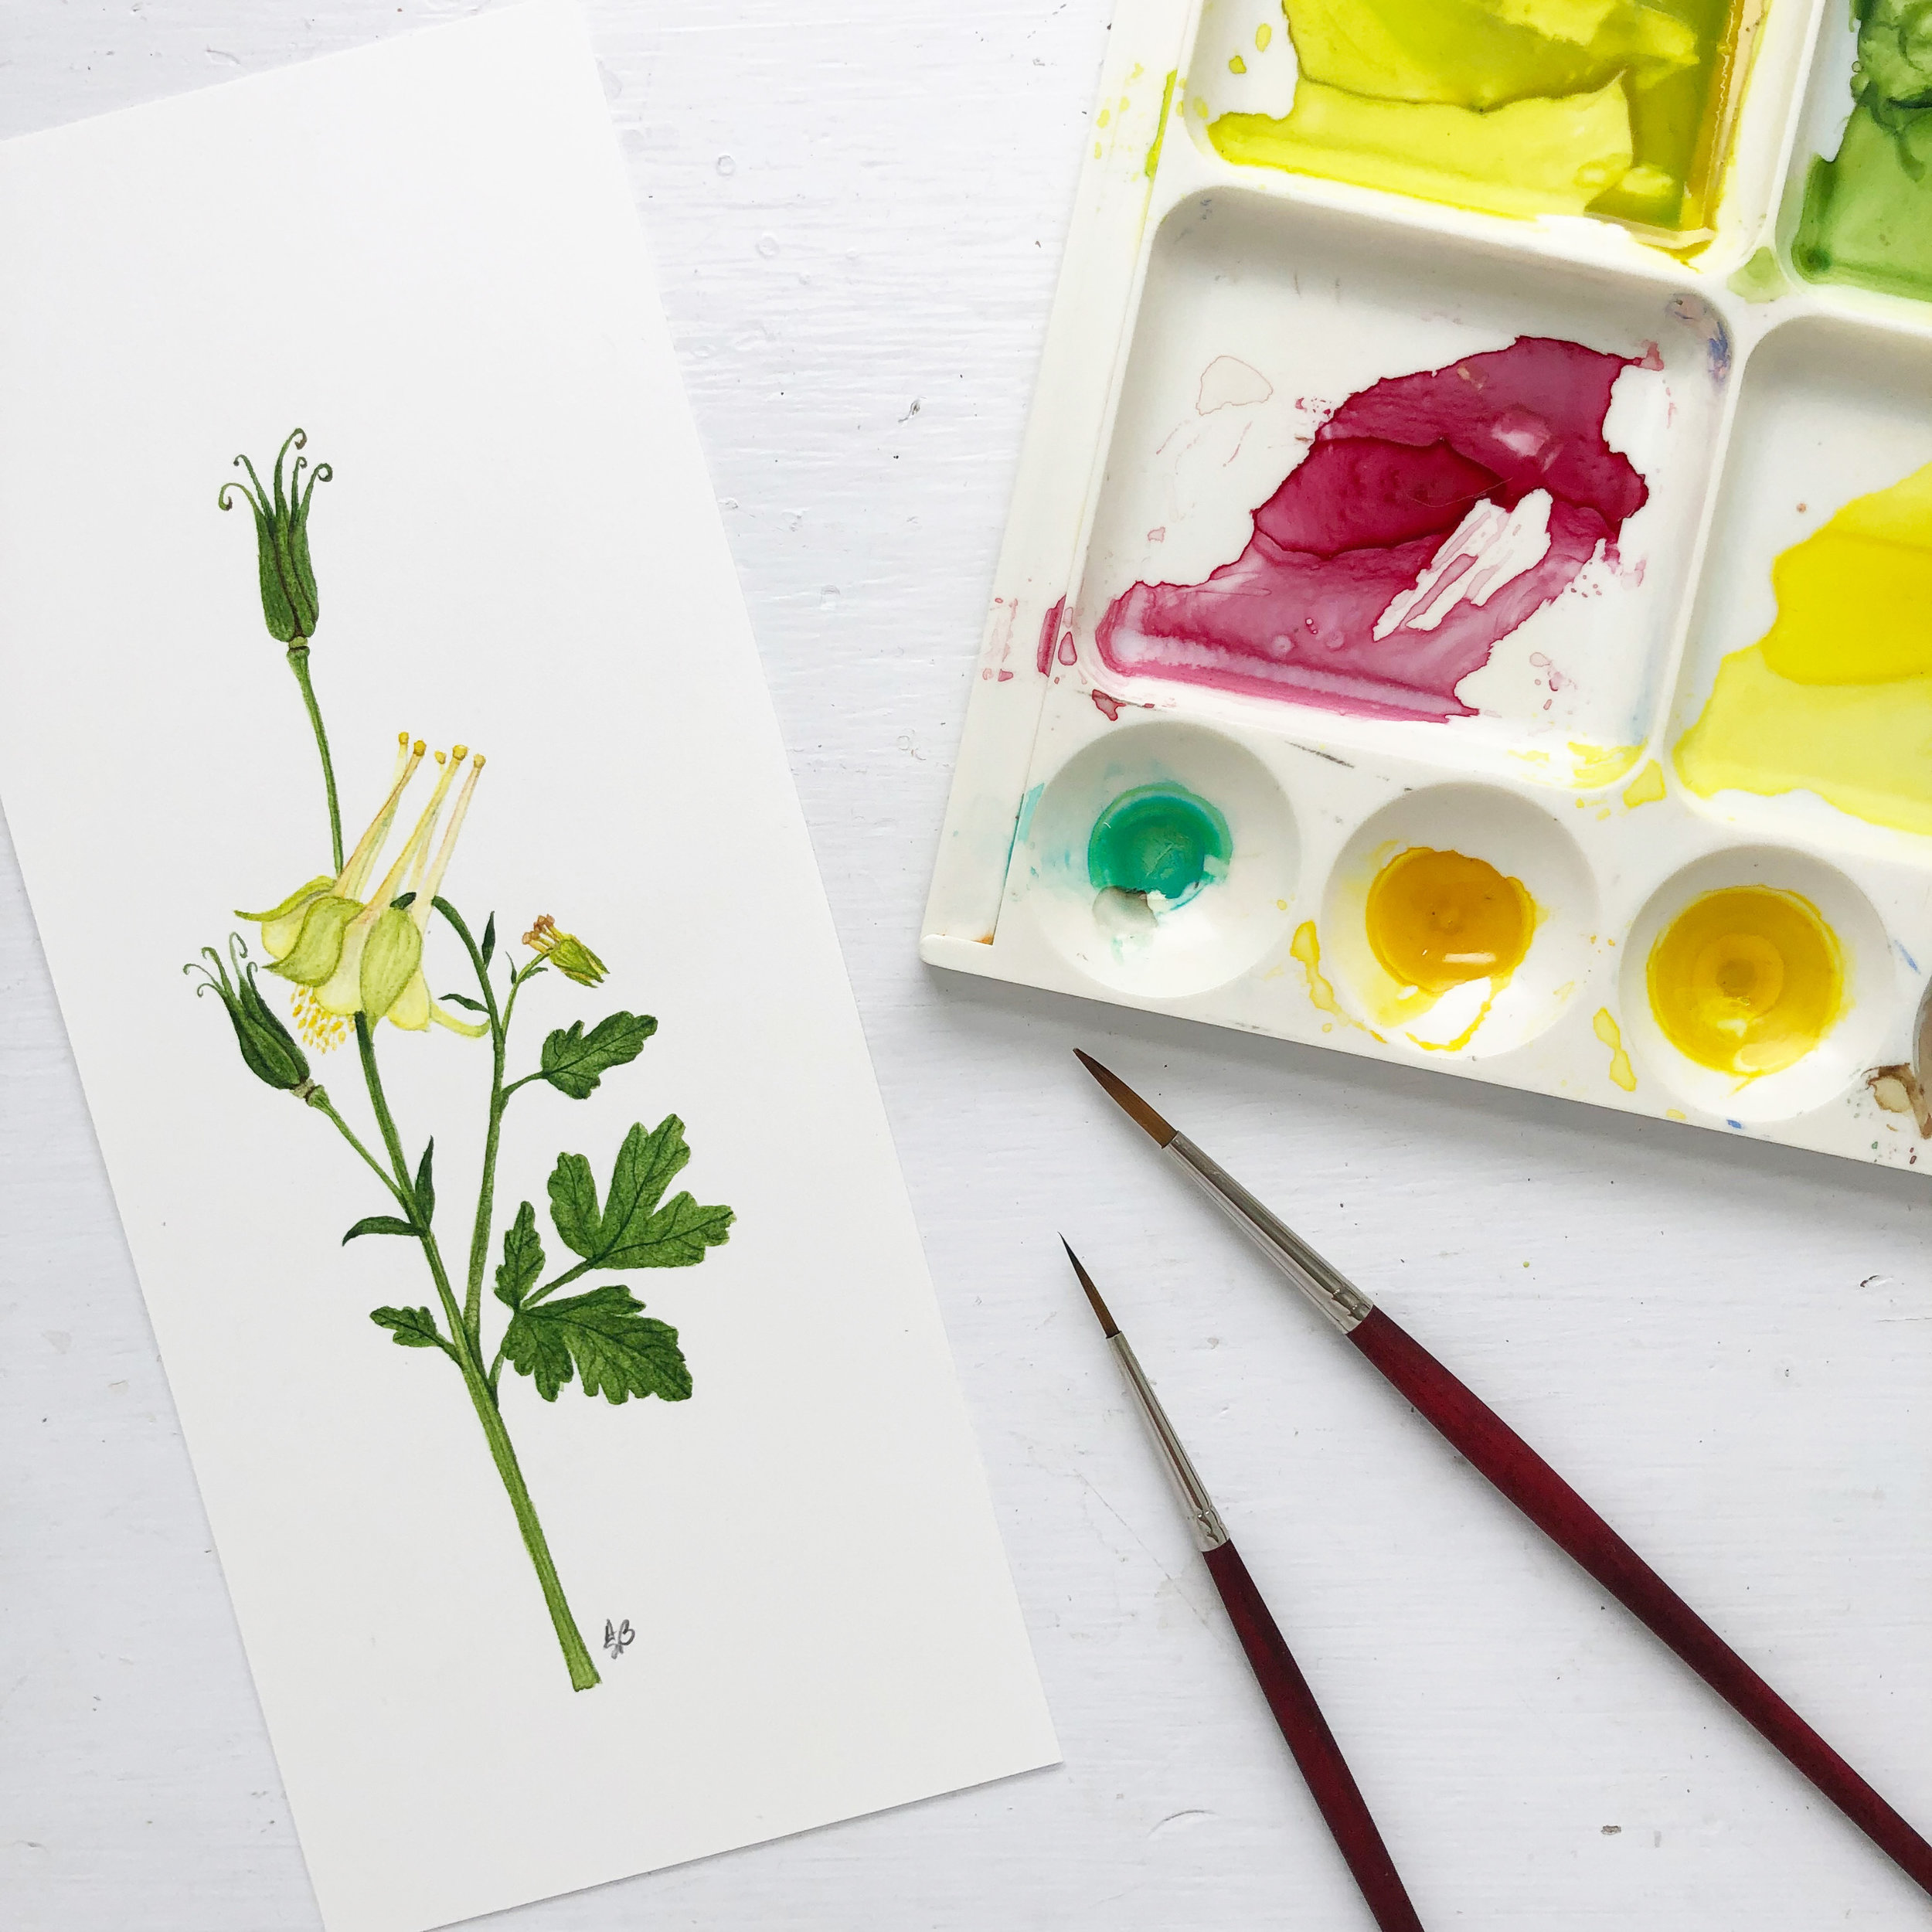 I Painted a Yellow Columbine Flower In My Studio This Week With Paint I Mixed Outside in My Garden